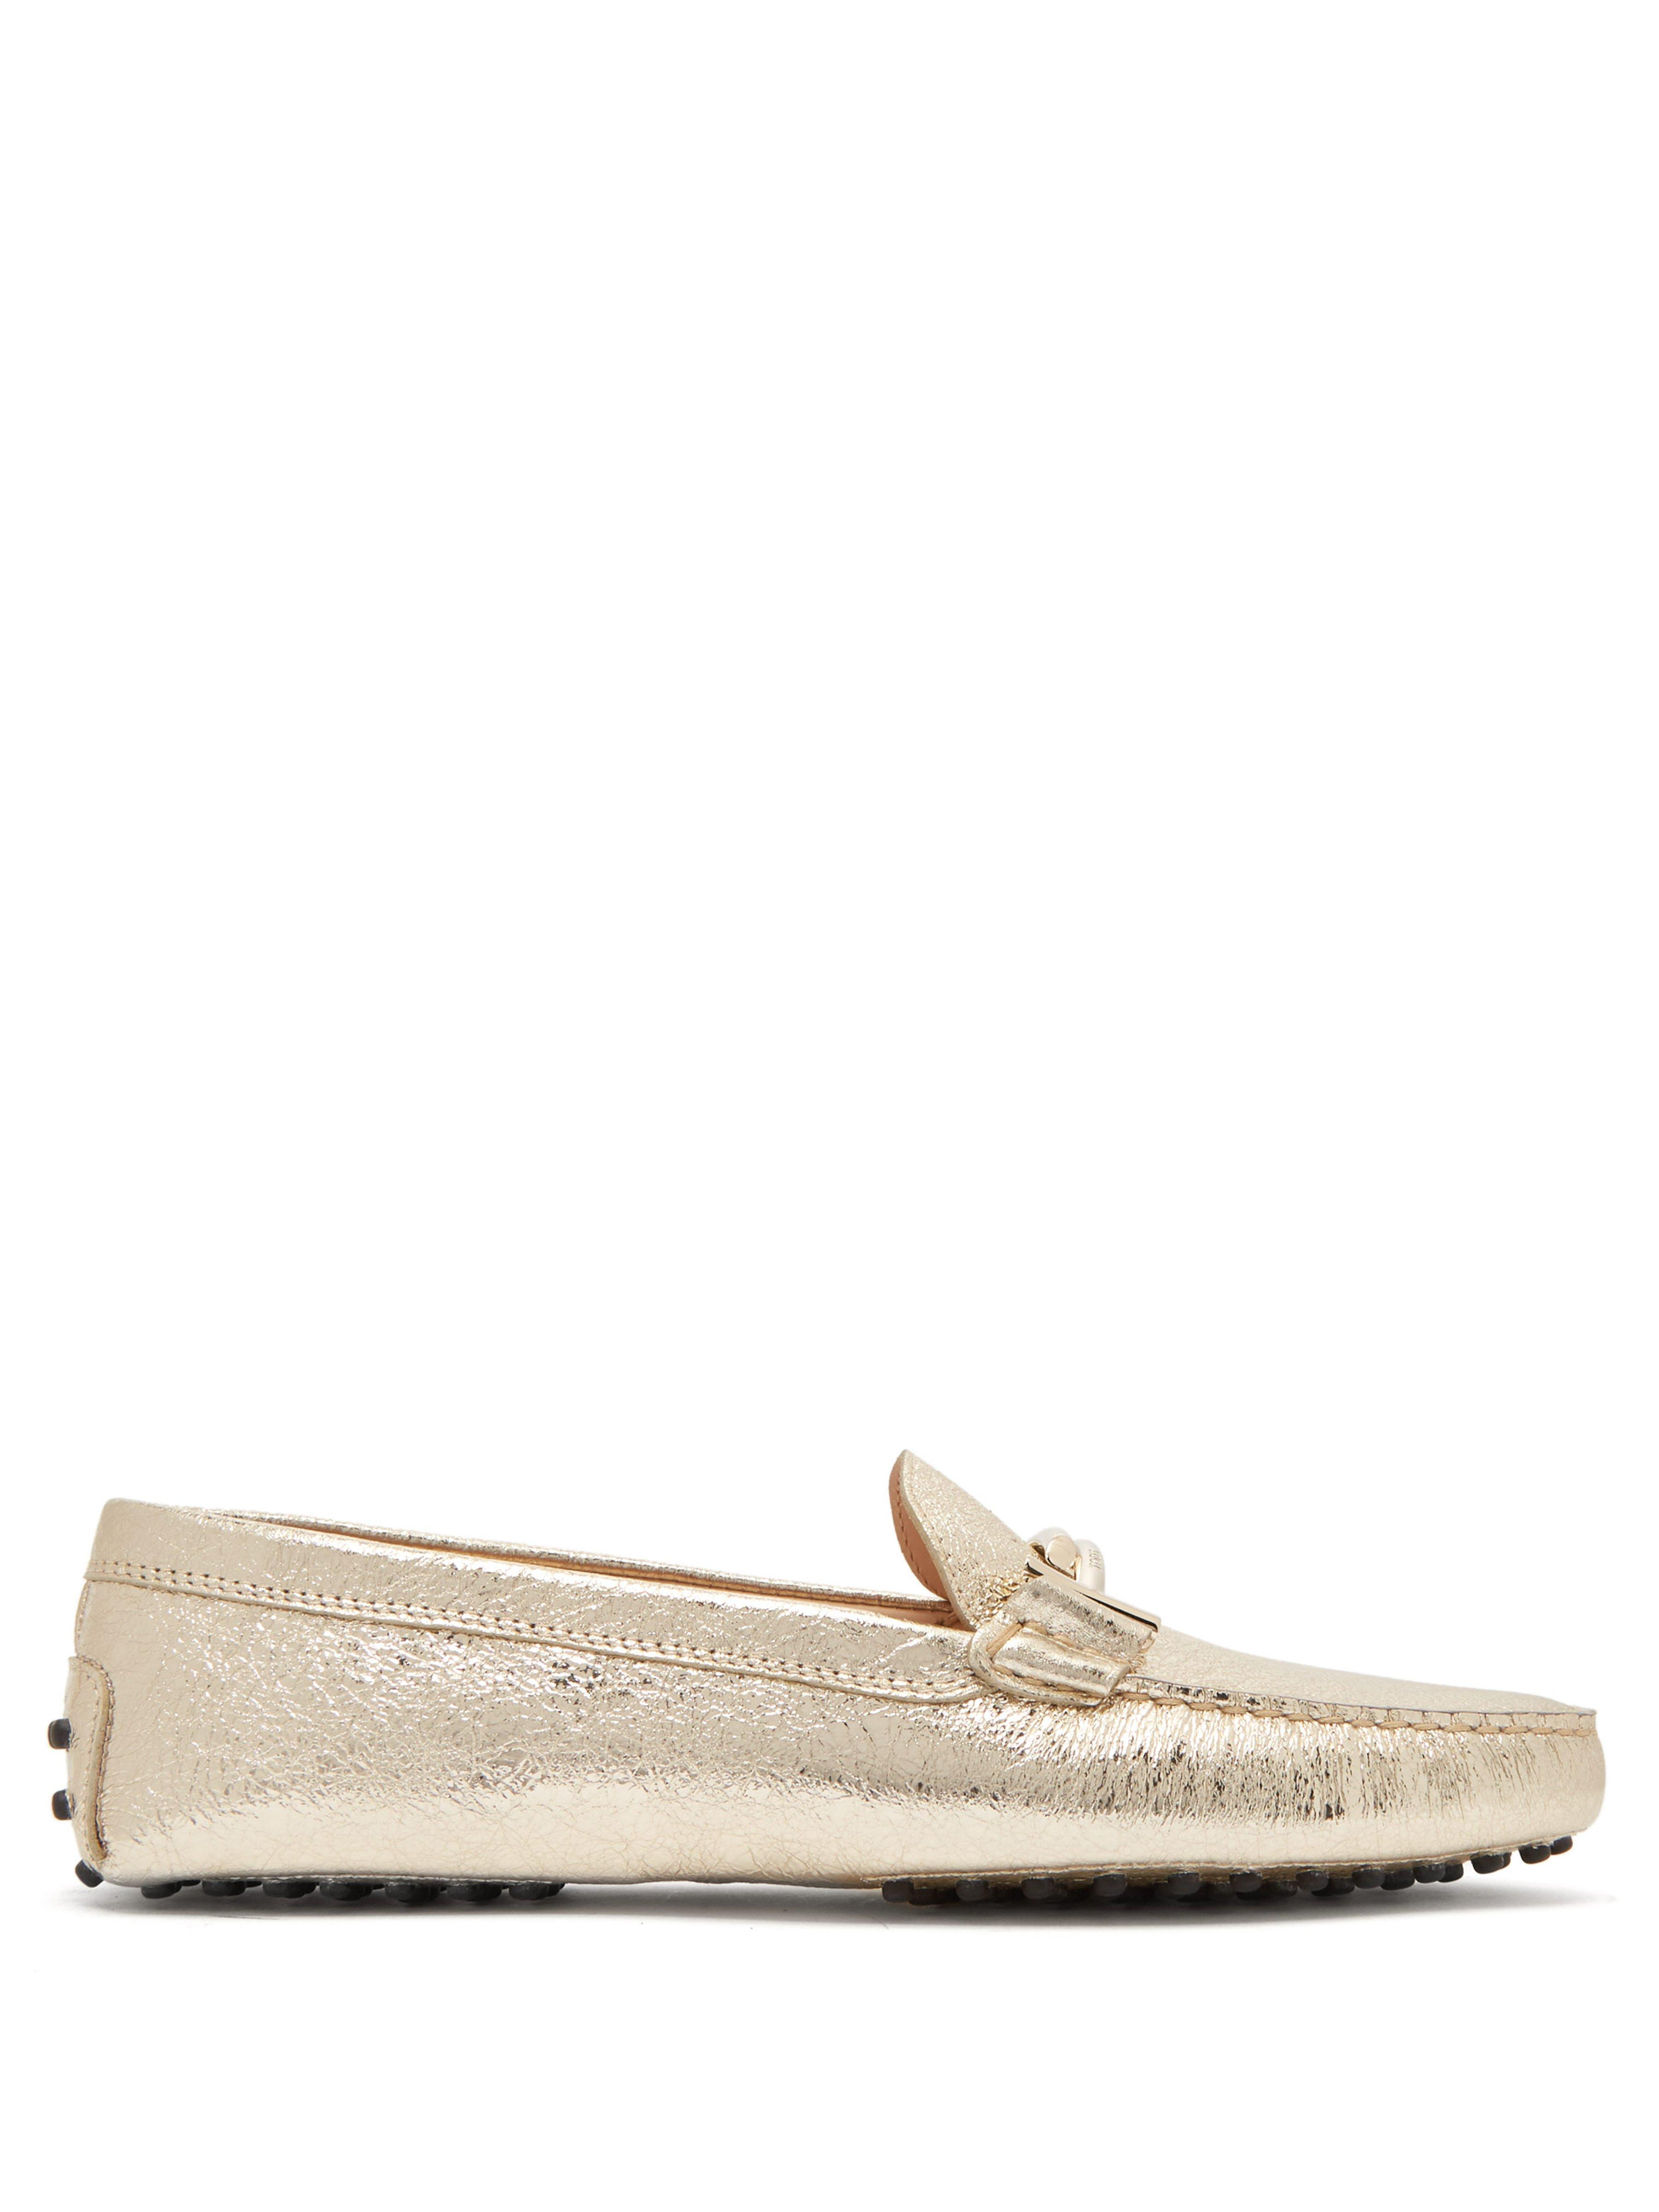 a62e8322a36 Tod s Gommini T Bar Metallic Leather Loafers in Metallic - Lyst